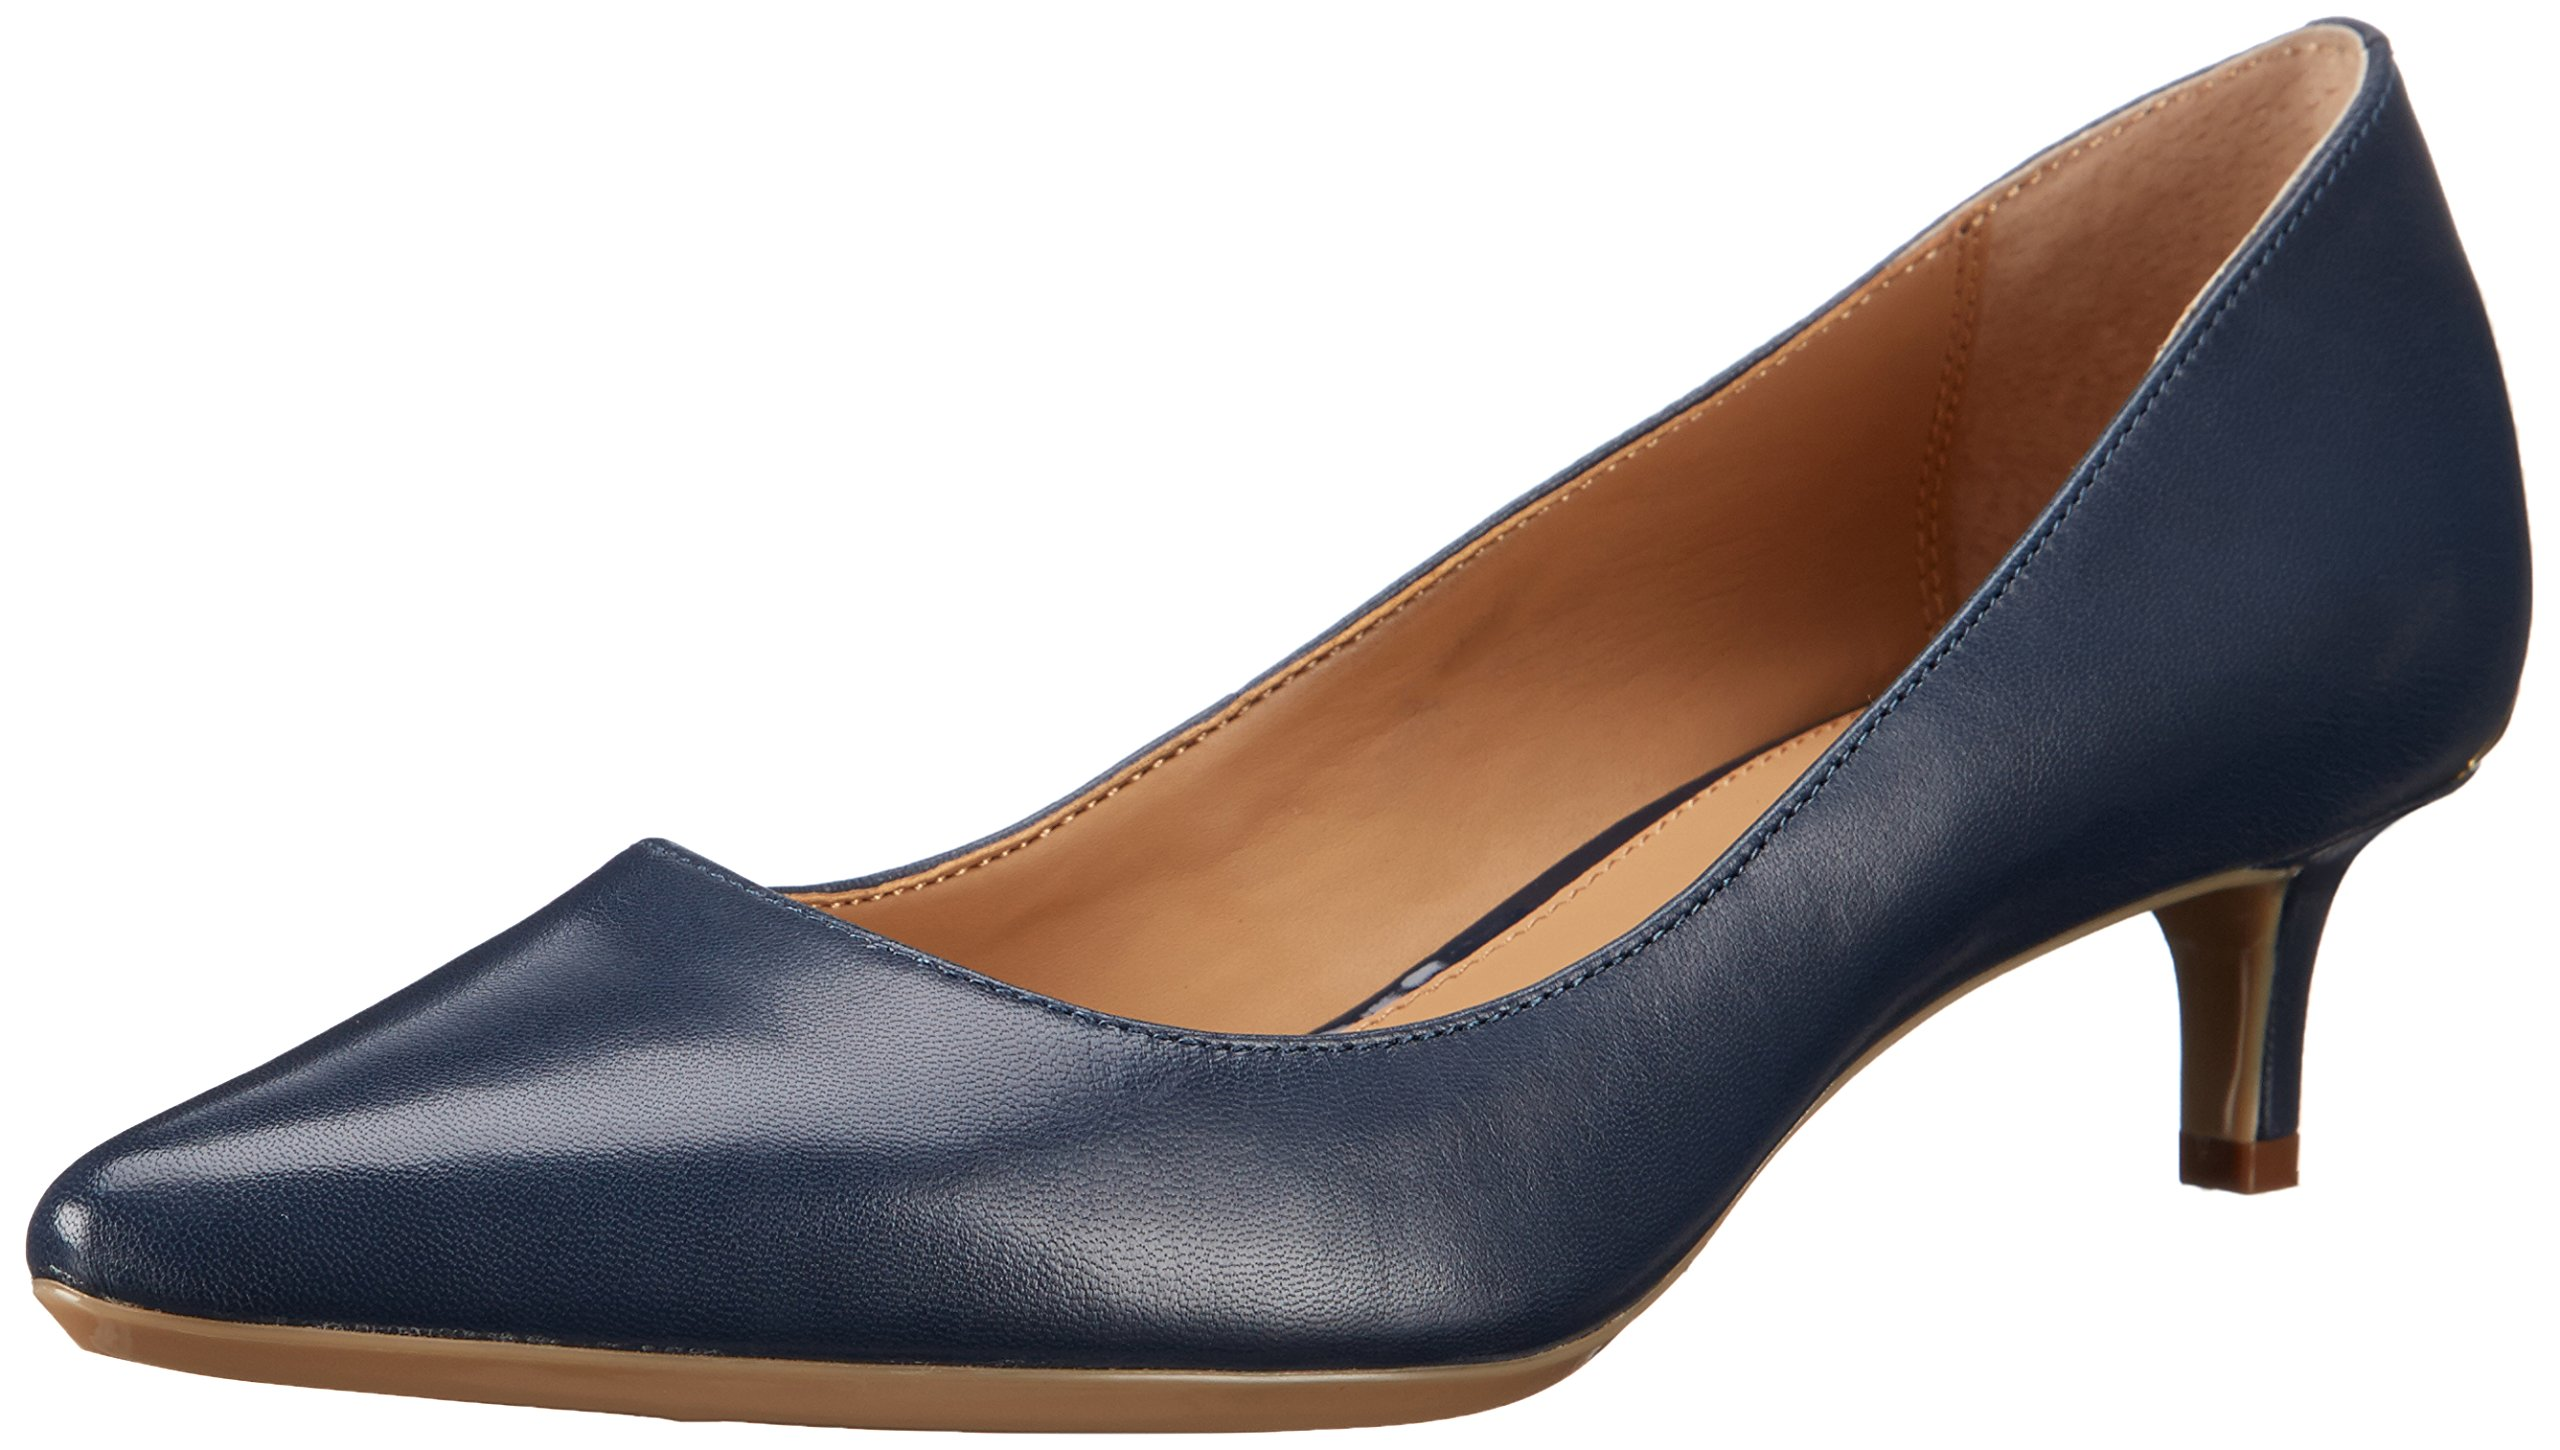 Calvin Klein Women's GABRIANNA Shoe, Navy Leather, 9 Medium US